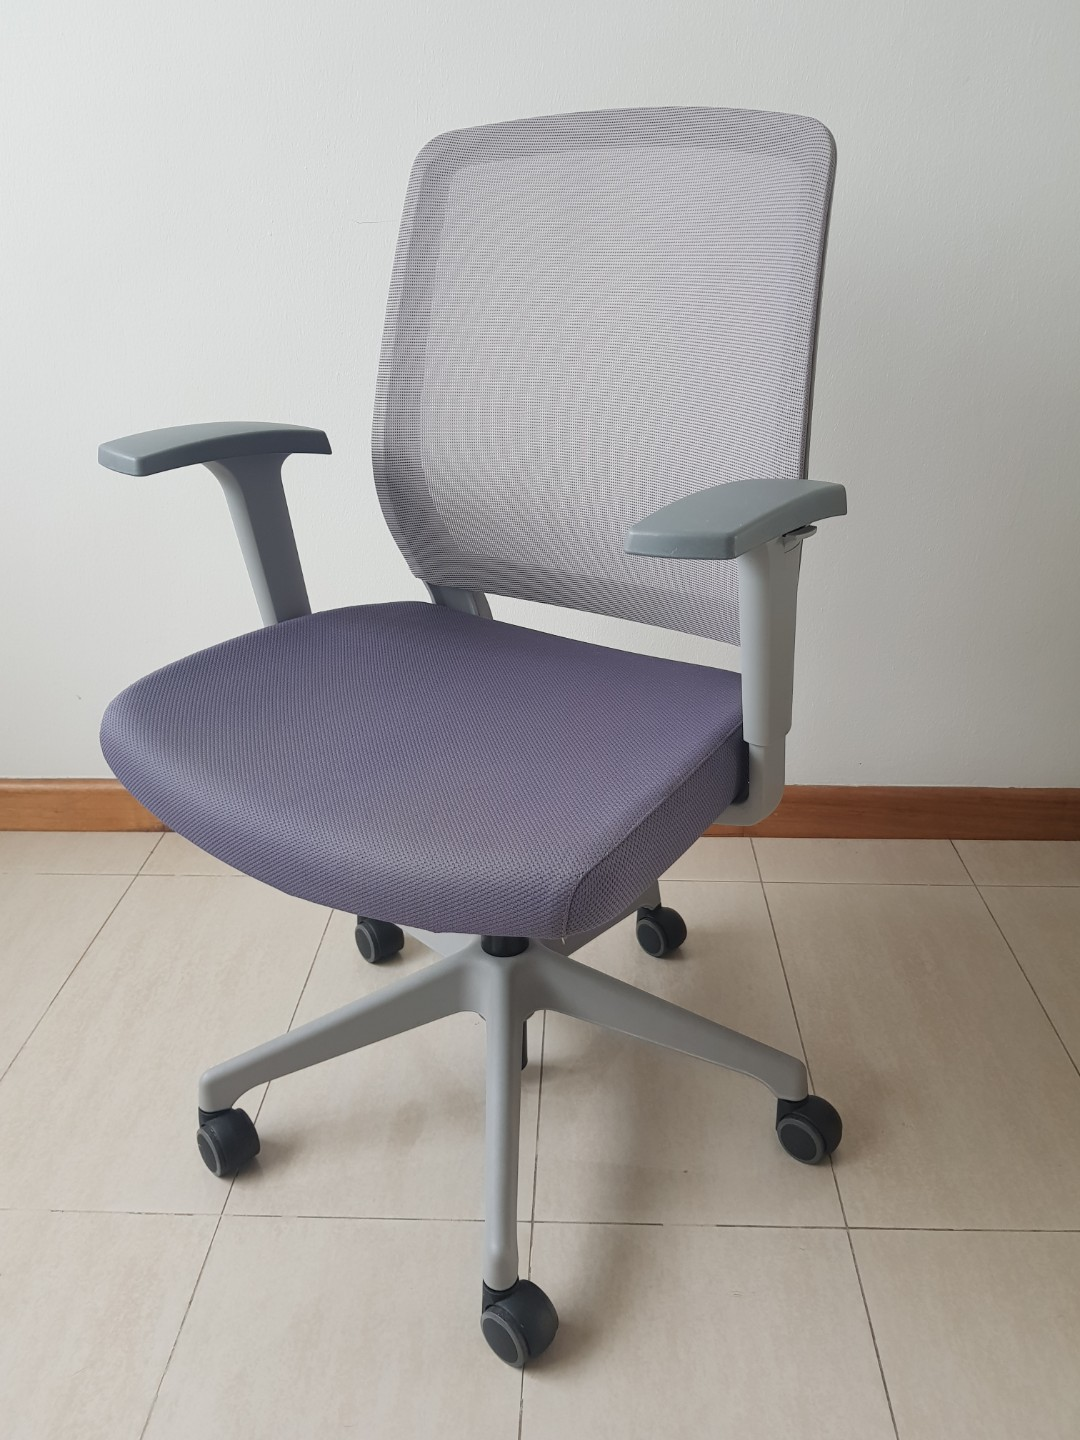 Wondrous Dawon Office Chair Ncnpc Chair Design For Home Ncnpcorg